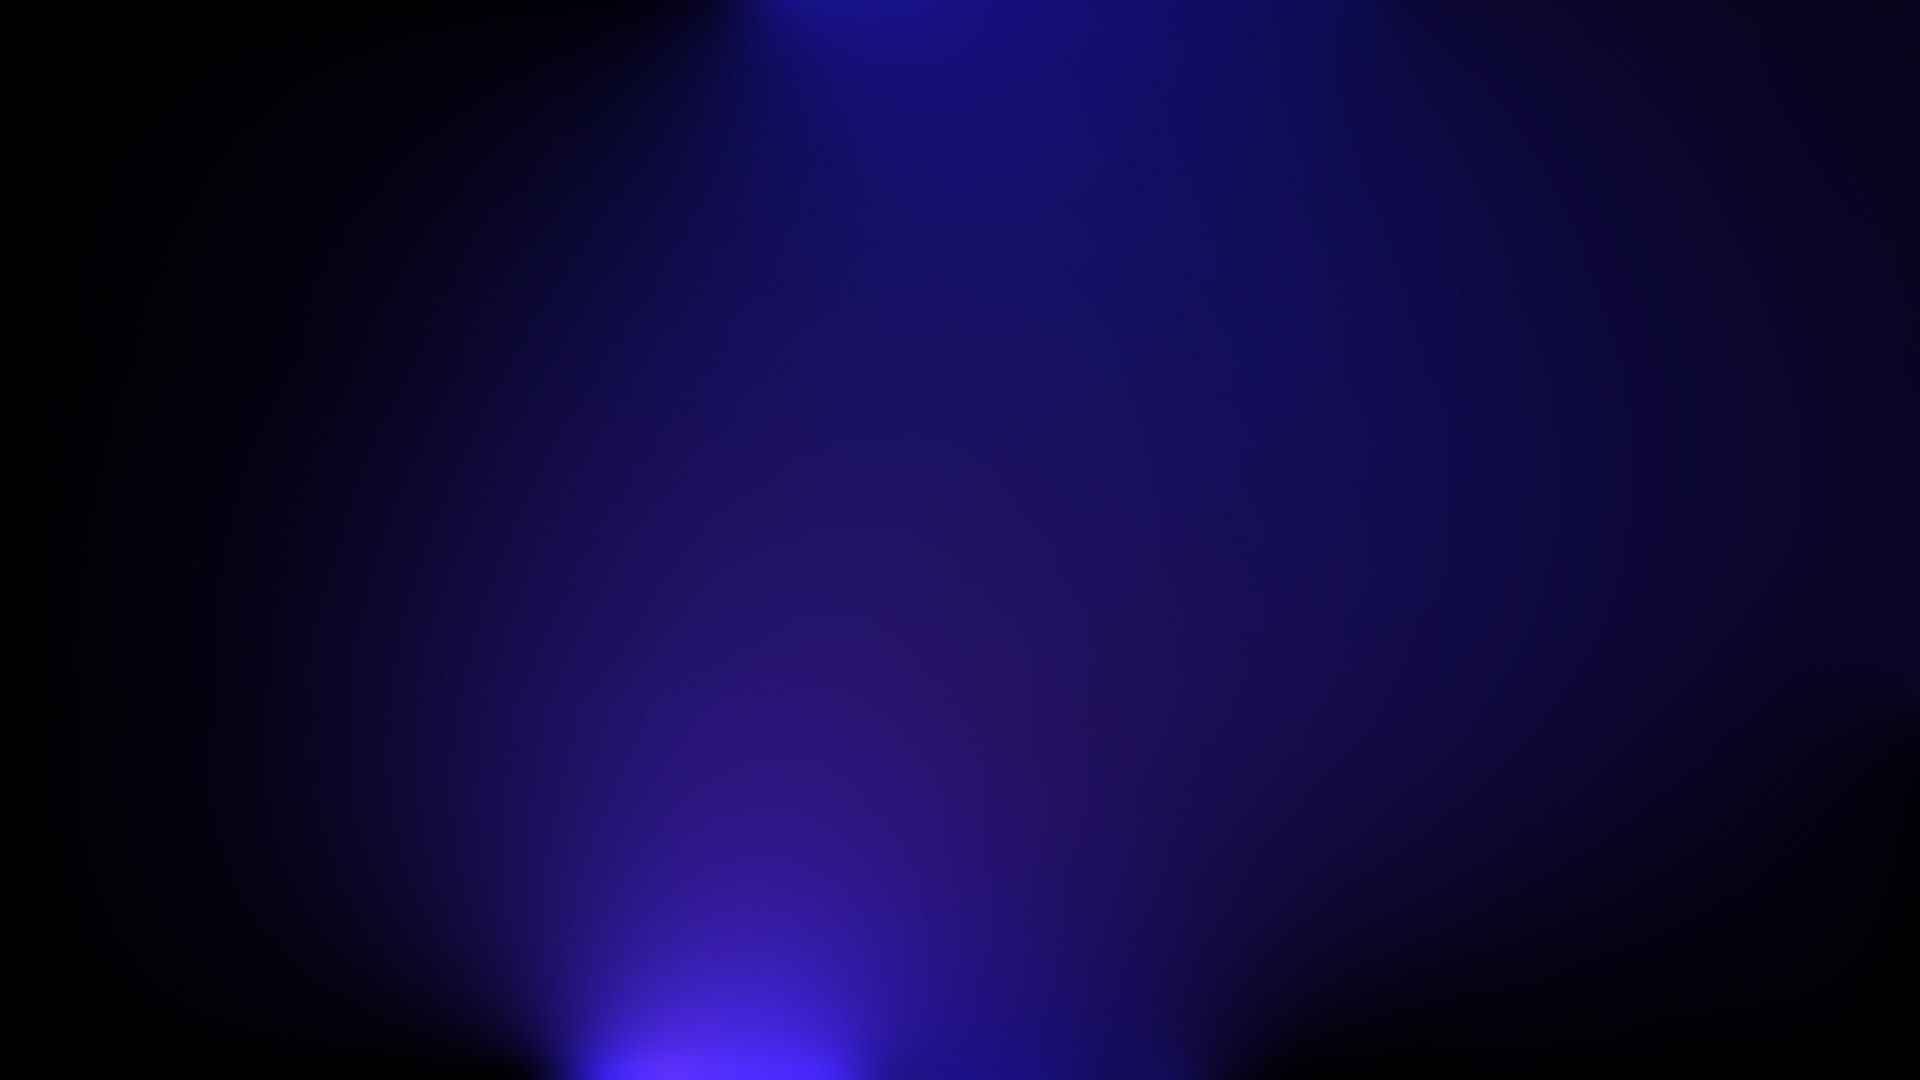 Wallpapers For > Navy Blue Background Wallpaper #7649